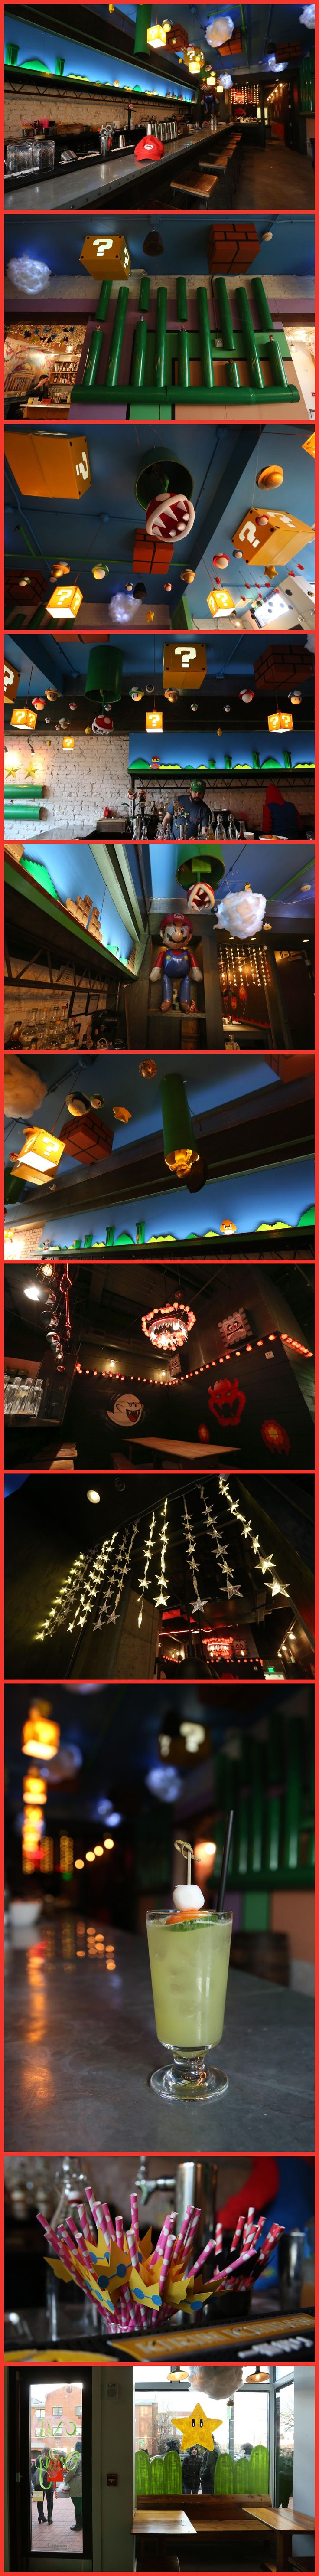 Super Mario Bros themed Pop Up Bar in Washington DC. Classic Nintendo NES Video Game decor and drinks.